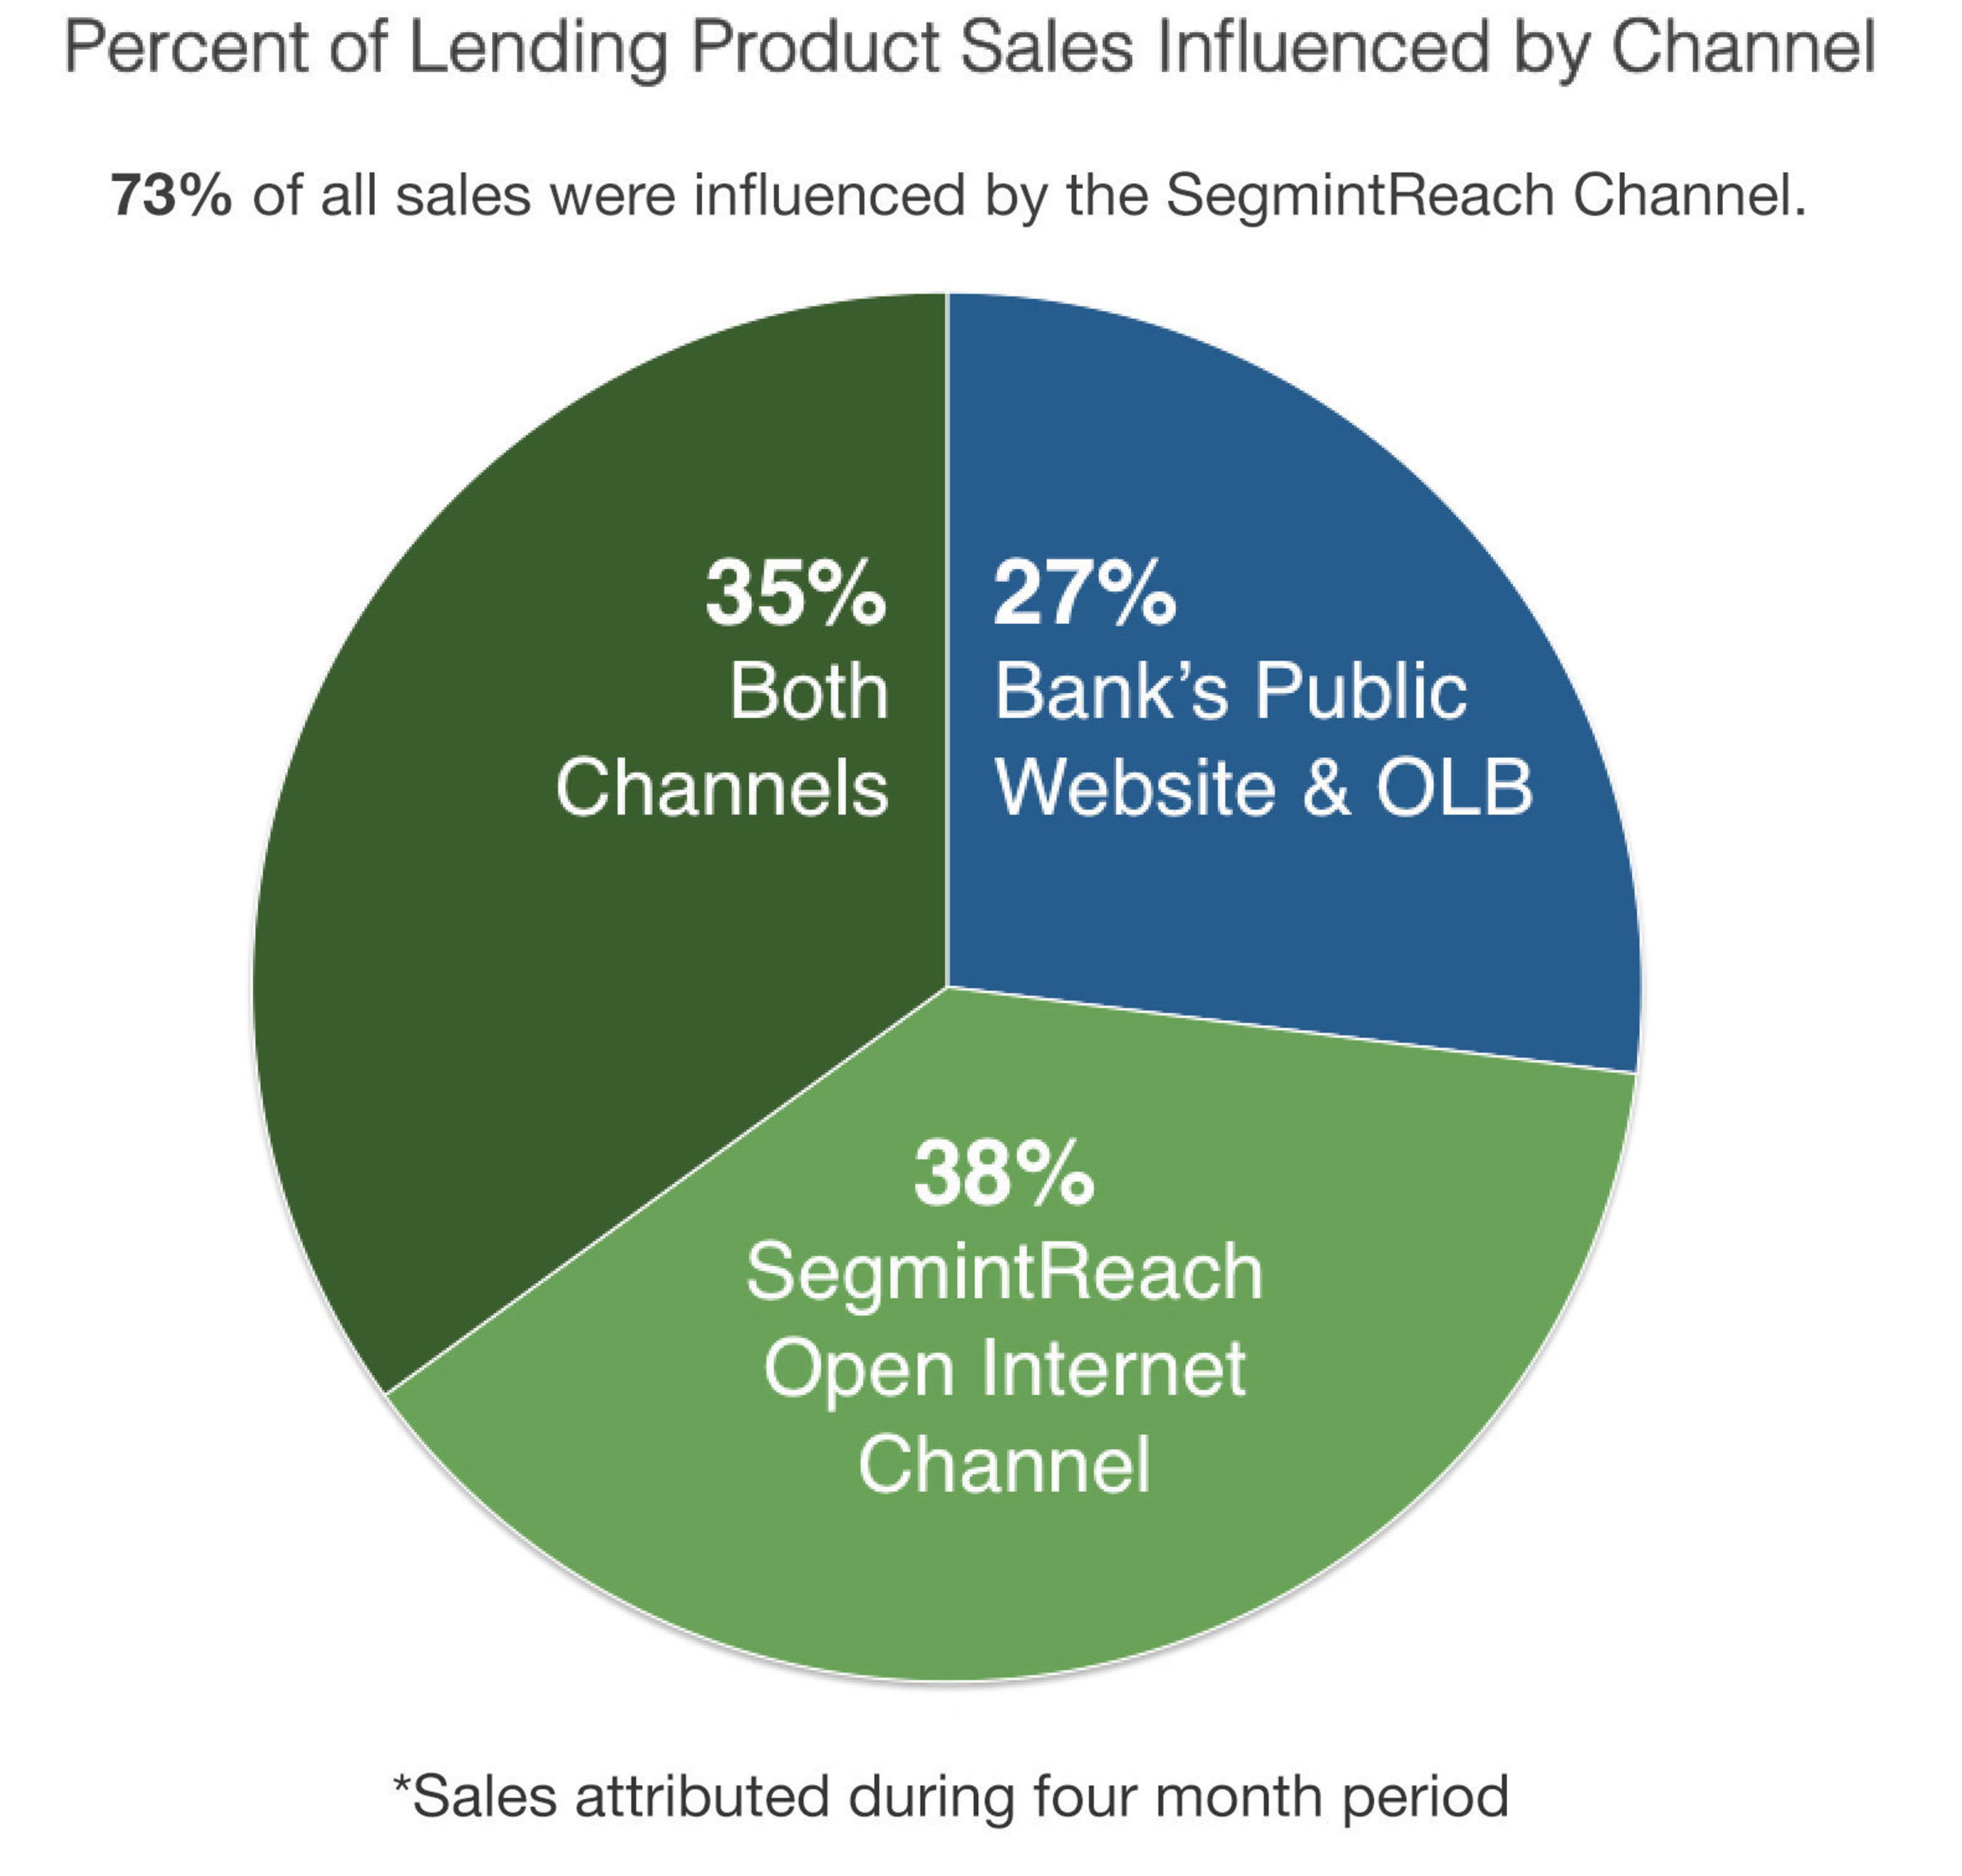 Percent of Lending Product Sales Influence by Channel